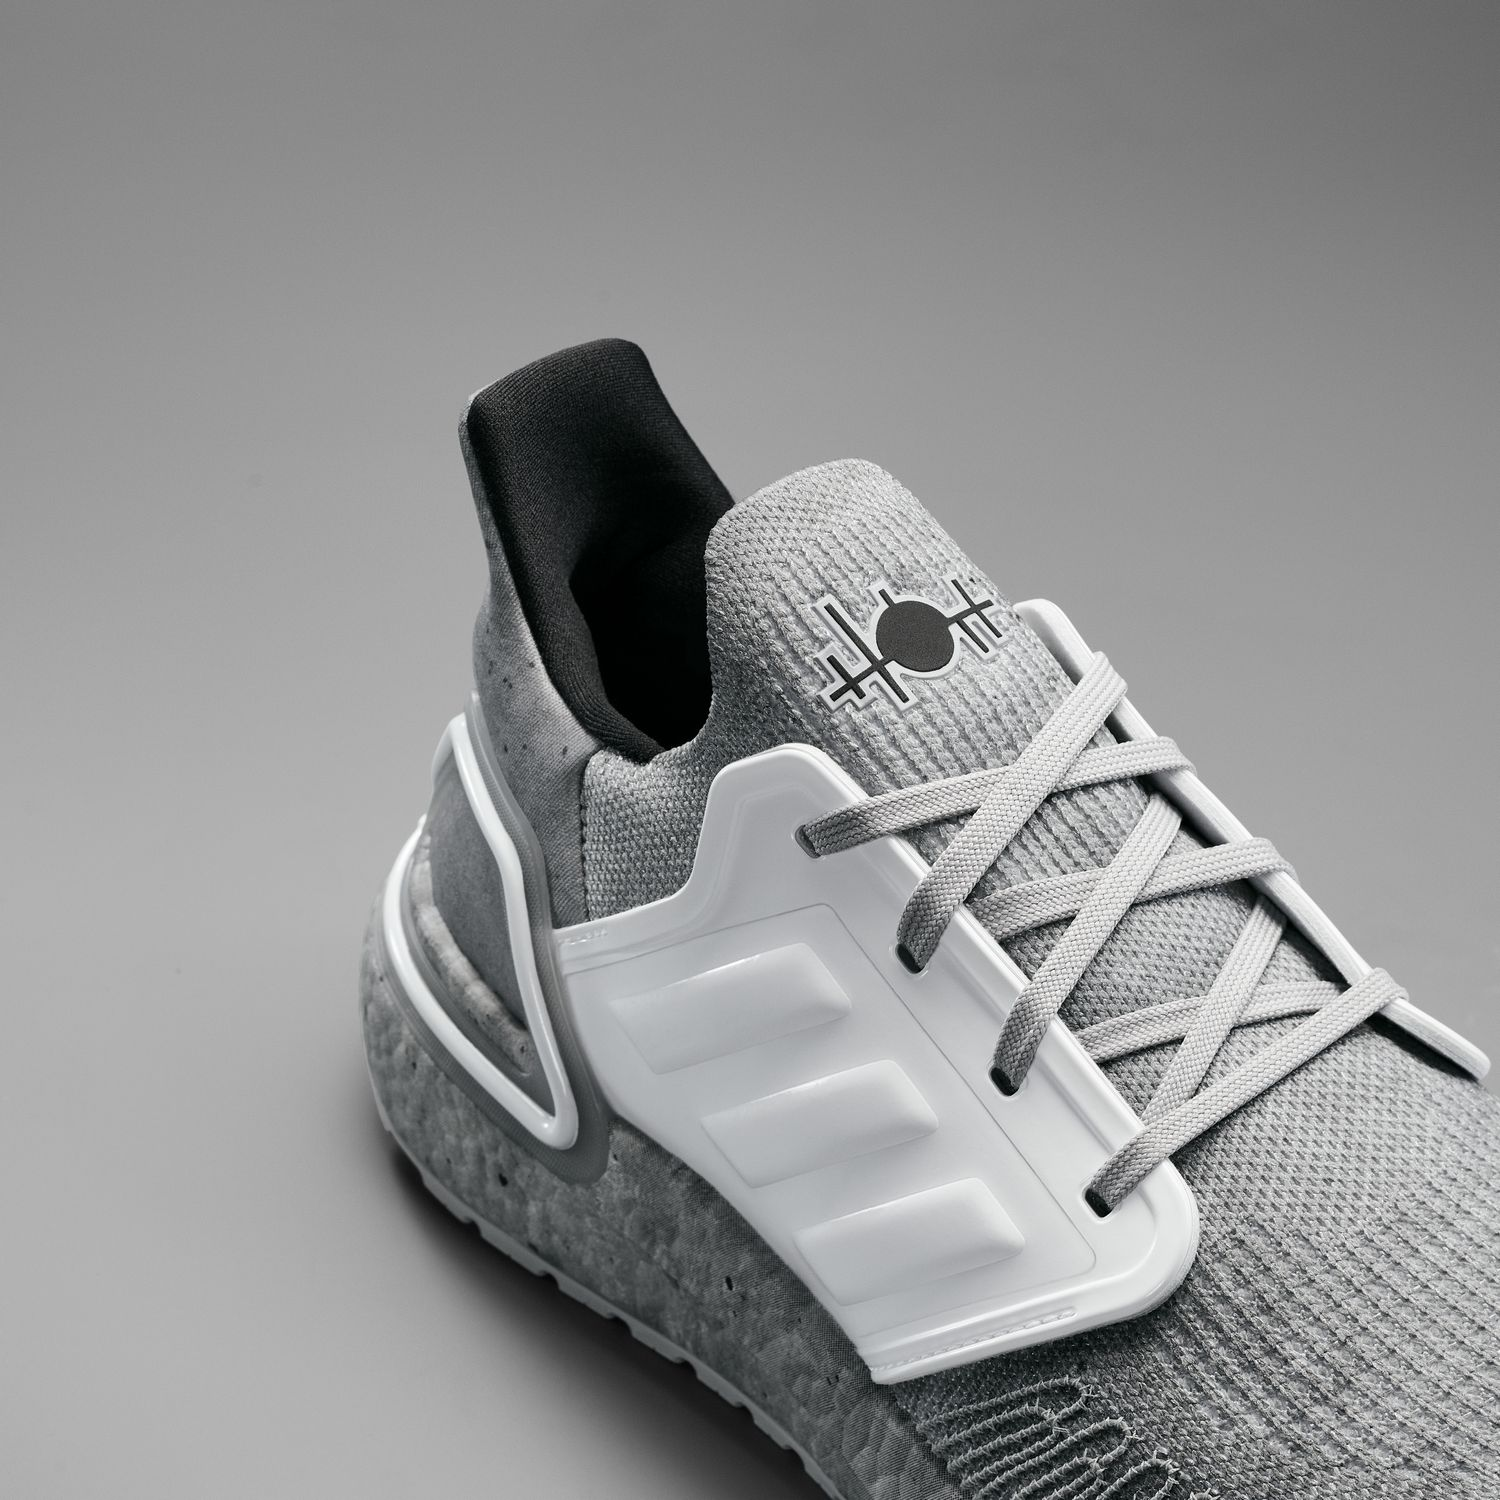 """adidas x James Bond - 007 Collection - """"No Time To Die"""" - UltraBOOST 20 Villain Safin"""